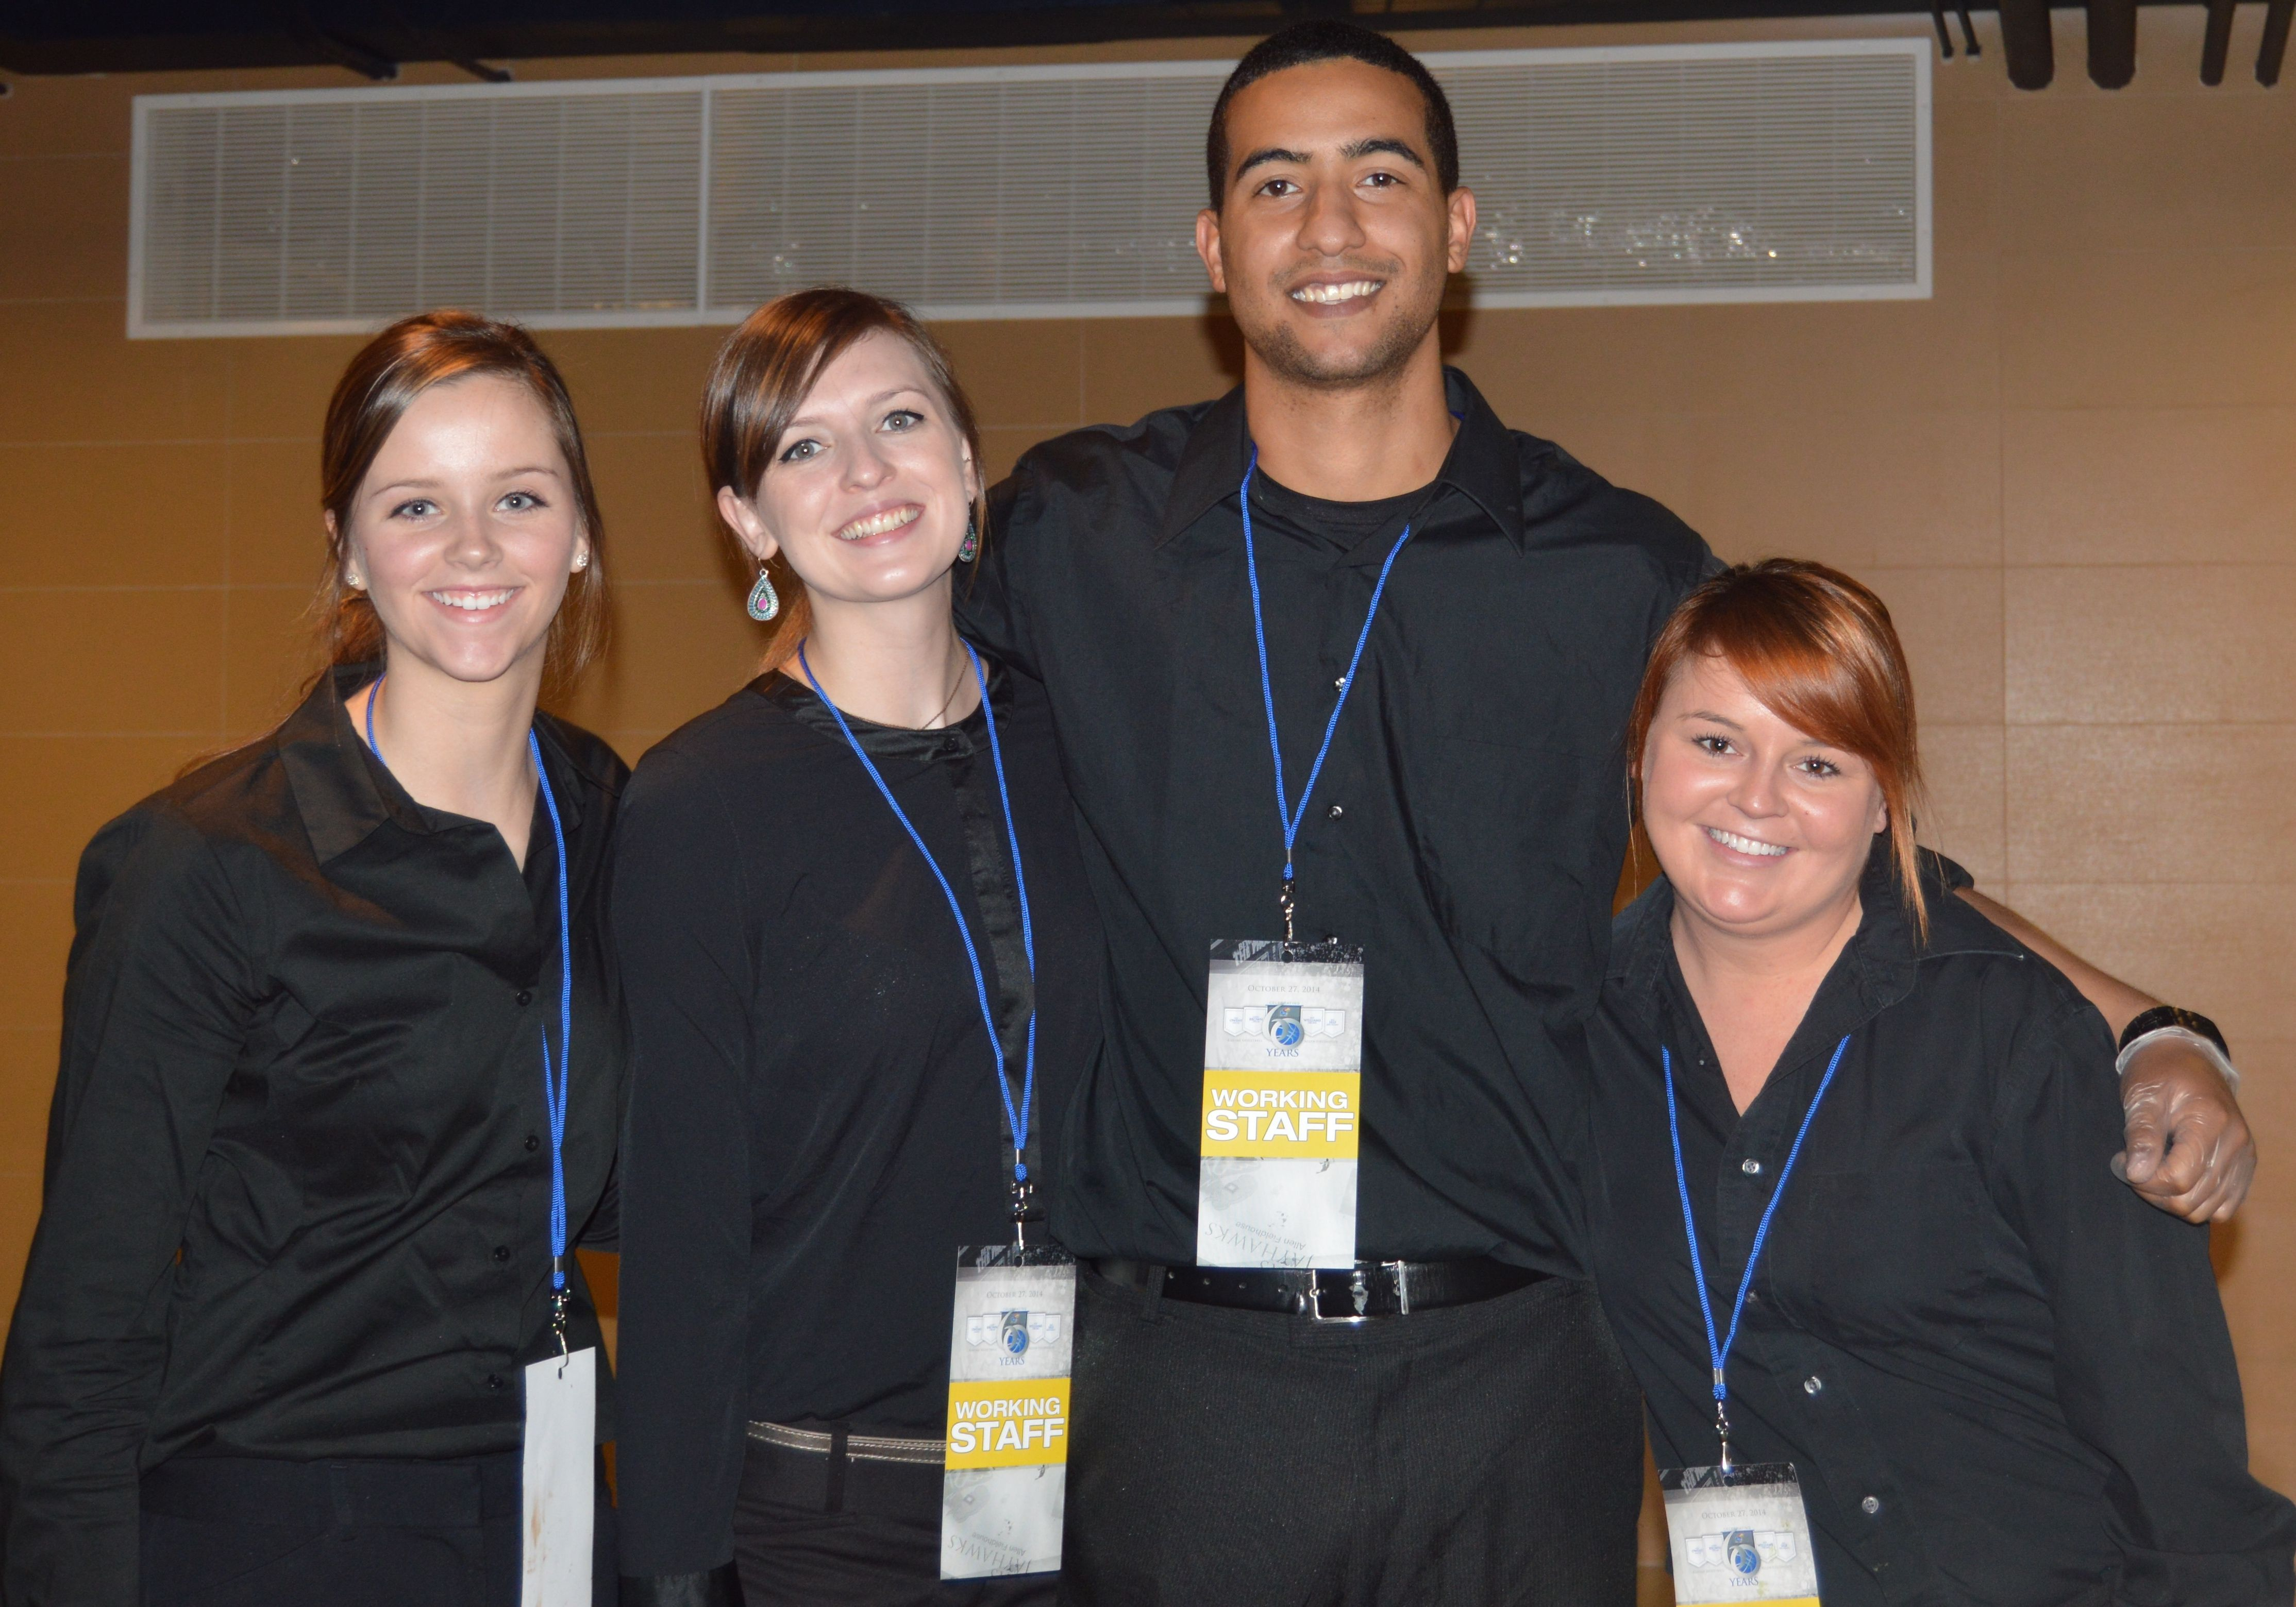 Professional & attentive Catering staff